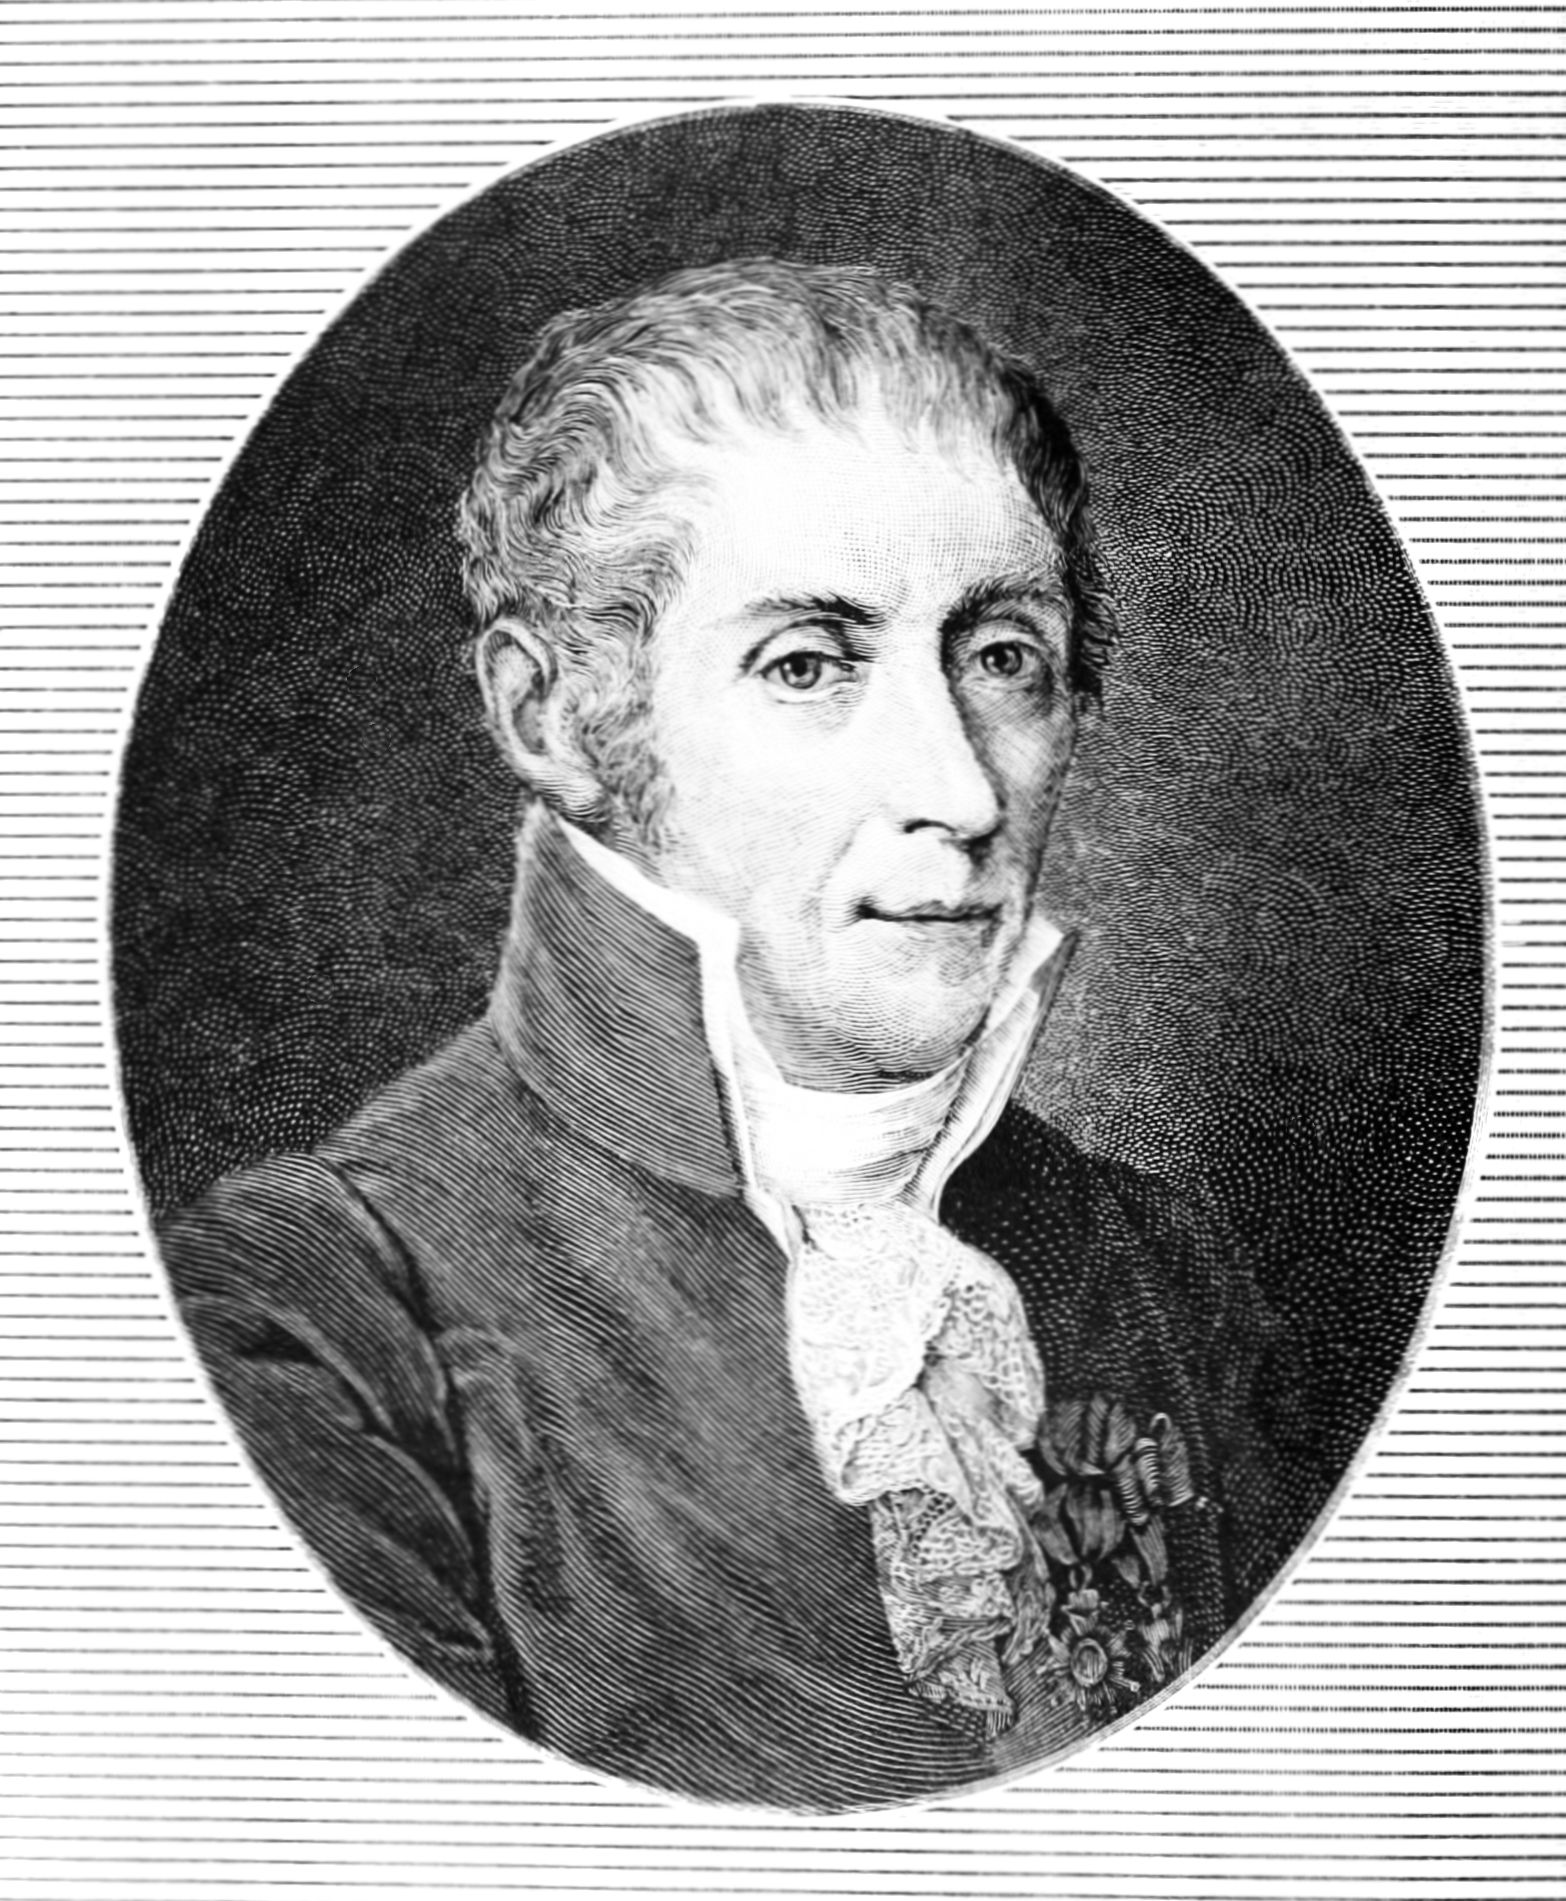 alessandro volta Alessandro volta physicist specialty electric cell, battery, methane, volt born feb 18, 1745 como, duchy of milan died mar 5, 1827 (at age 82) como, lombardy.